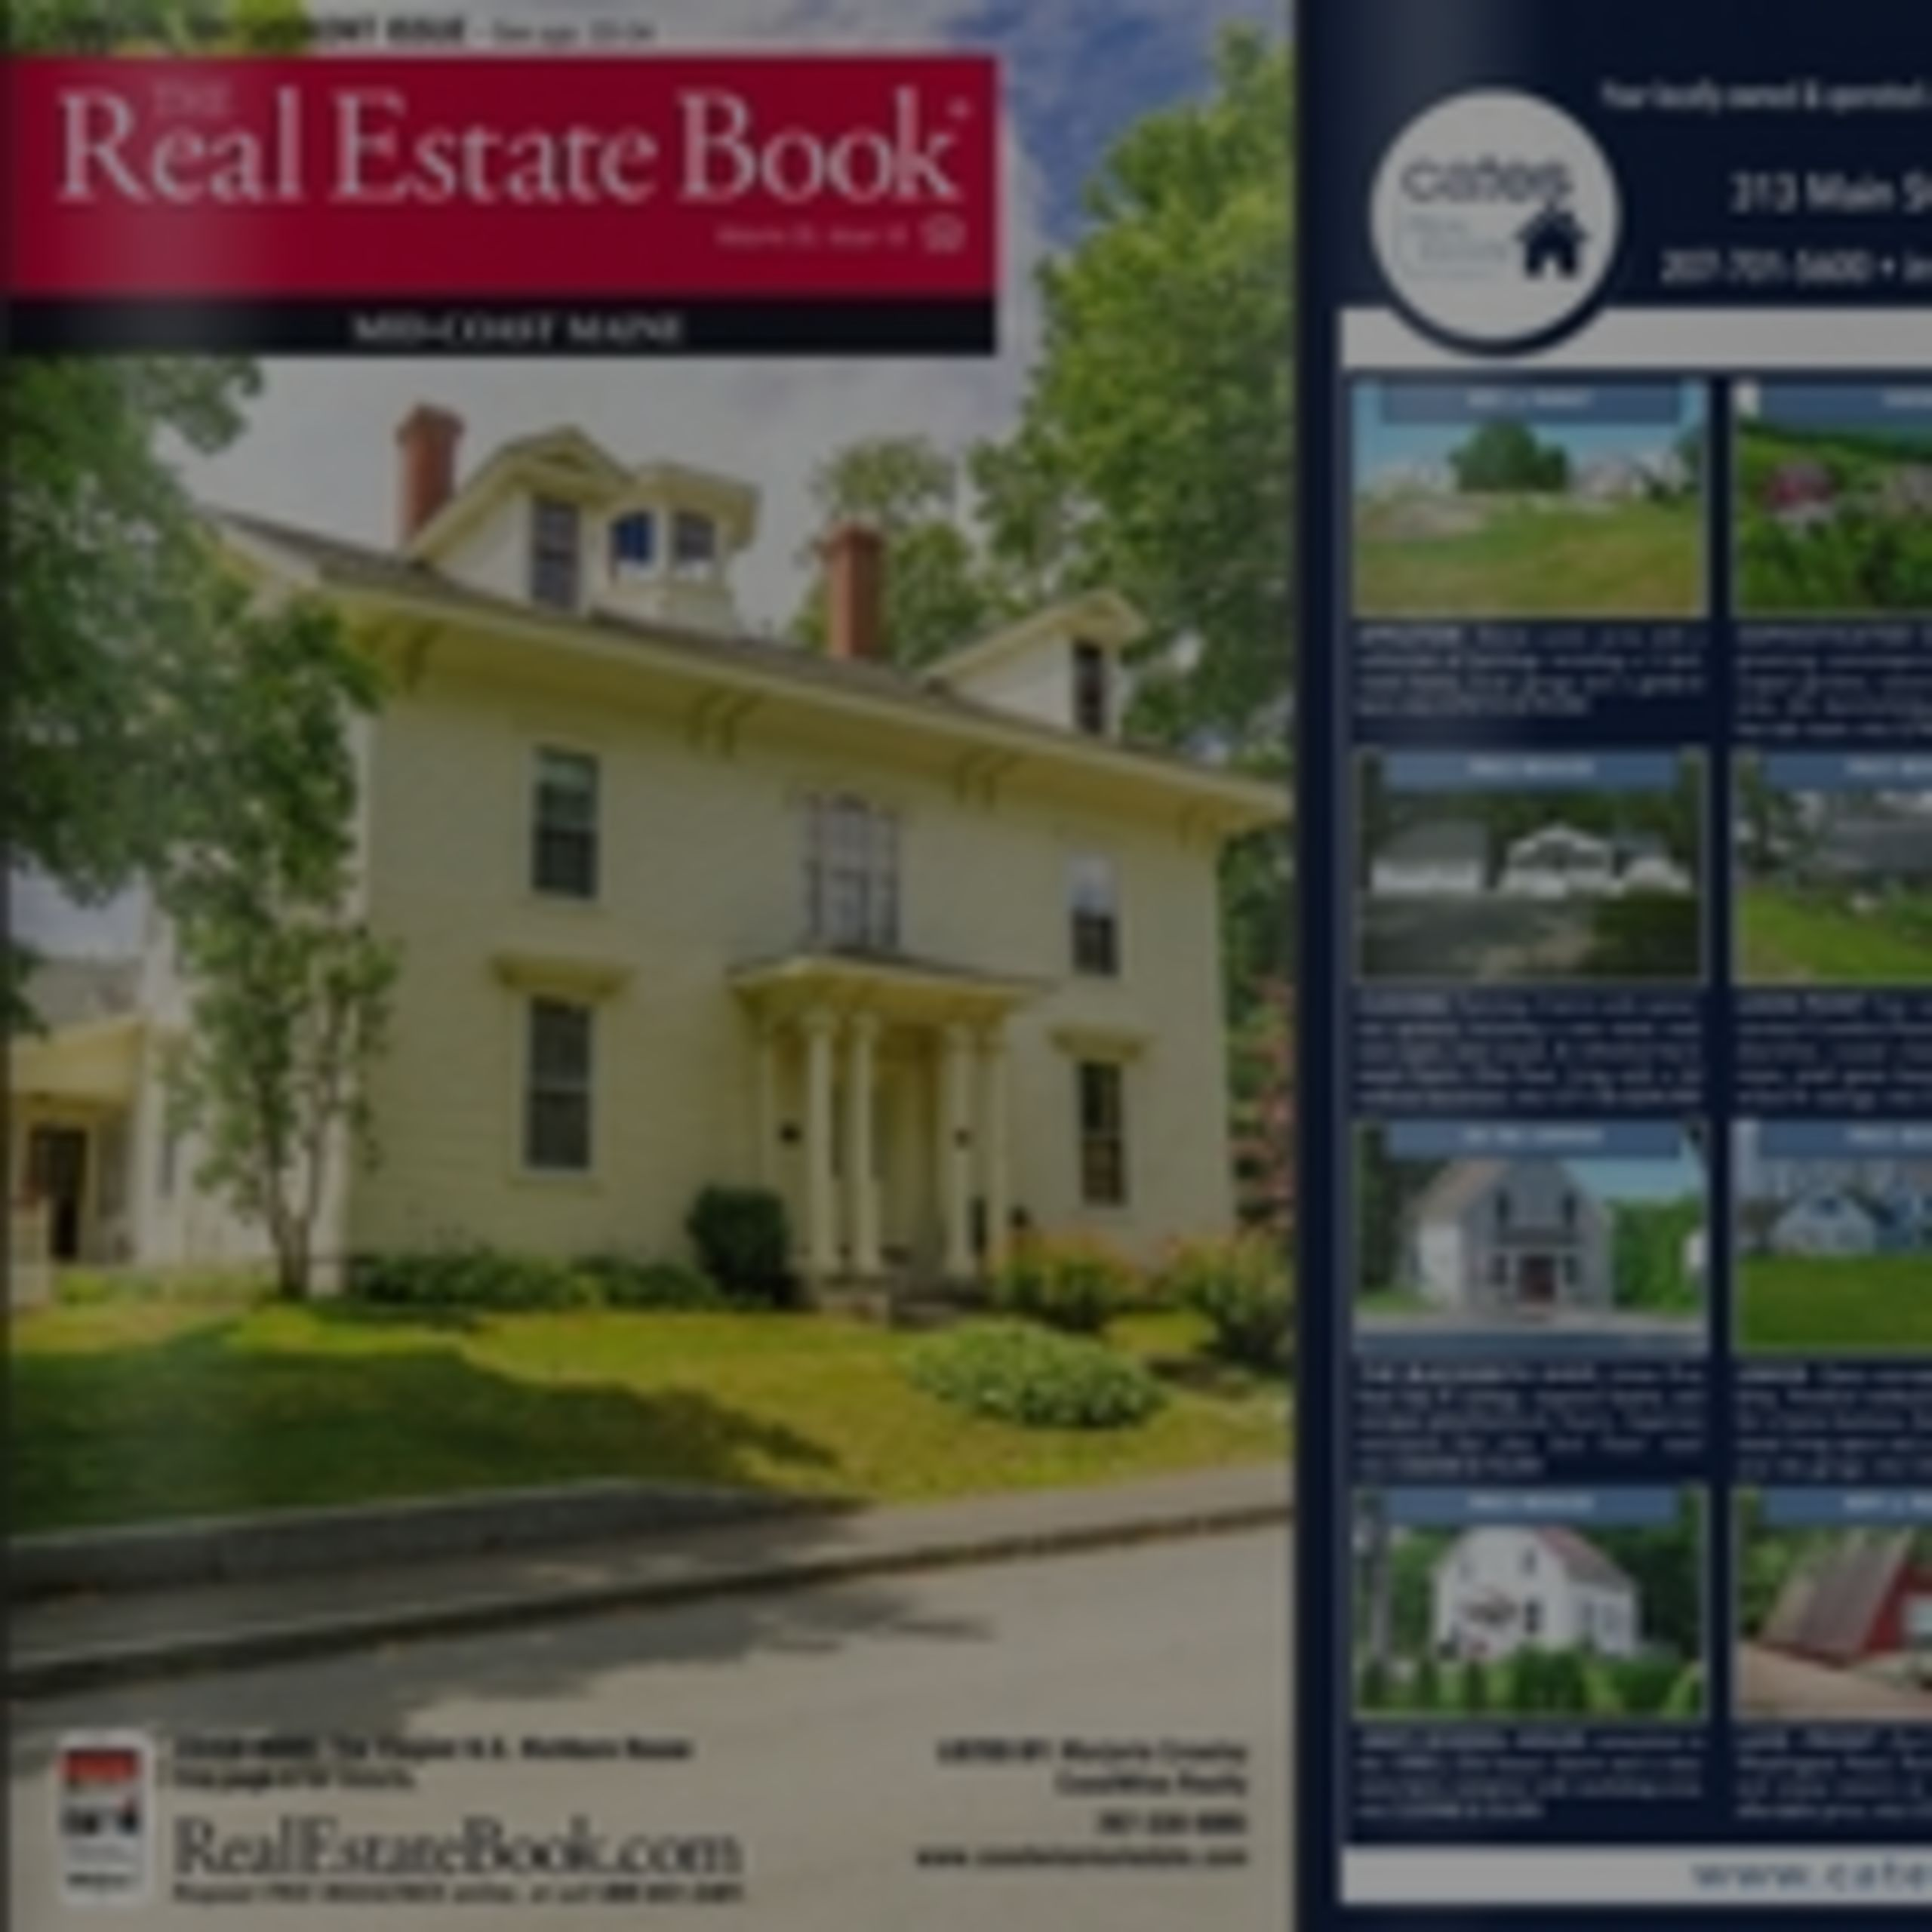 Midcoast Edition: The Real Estate Book Vol 25.10